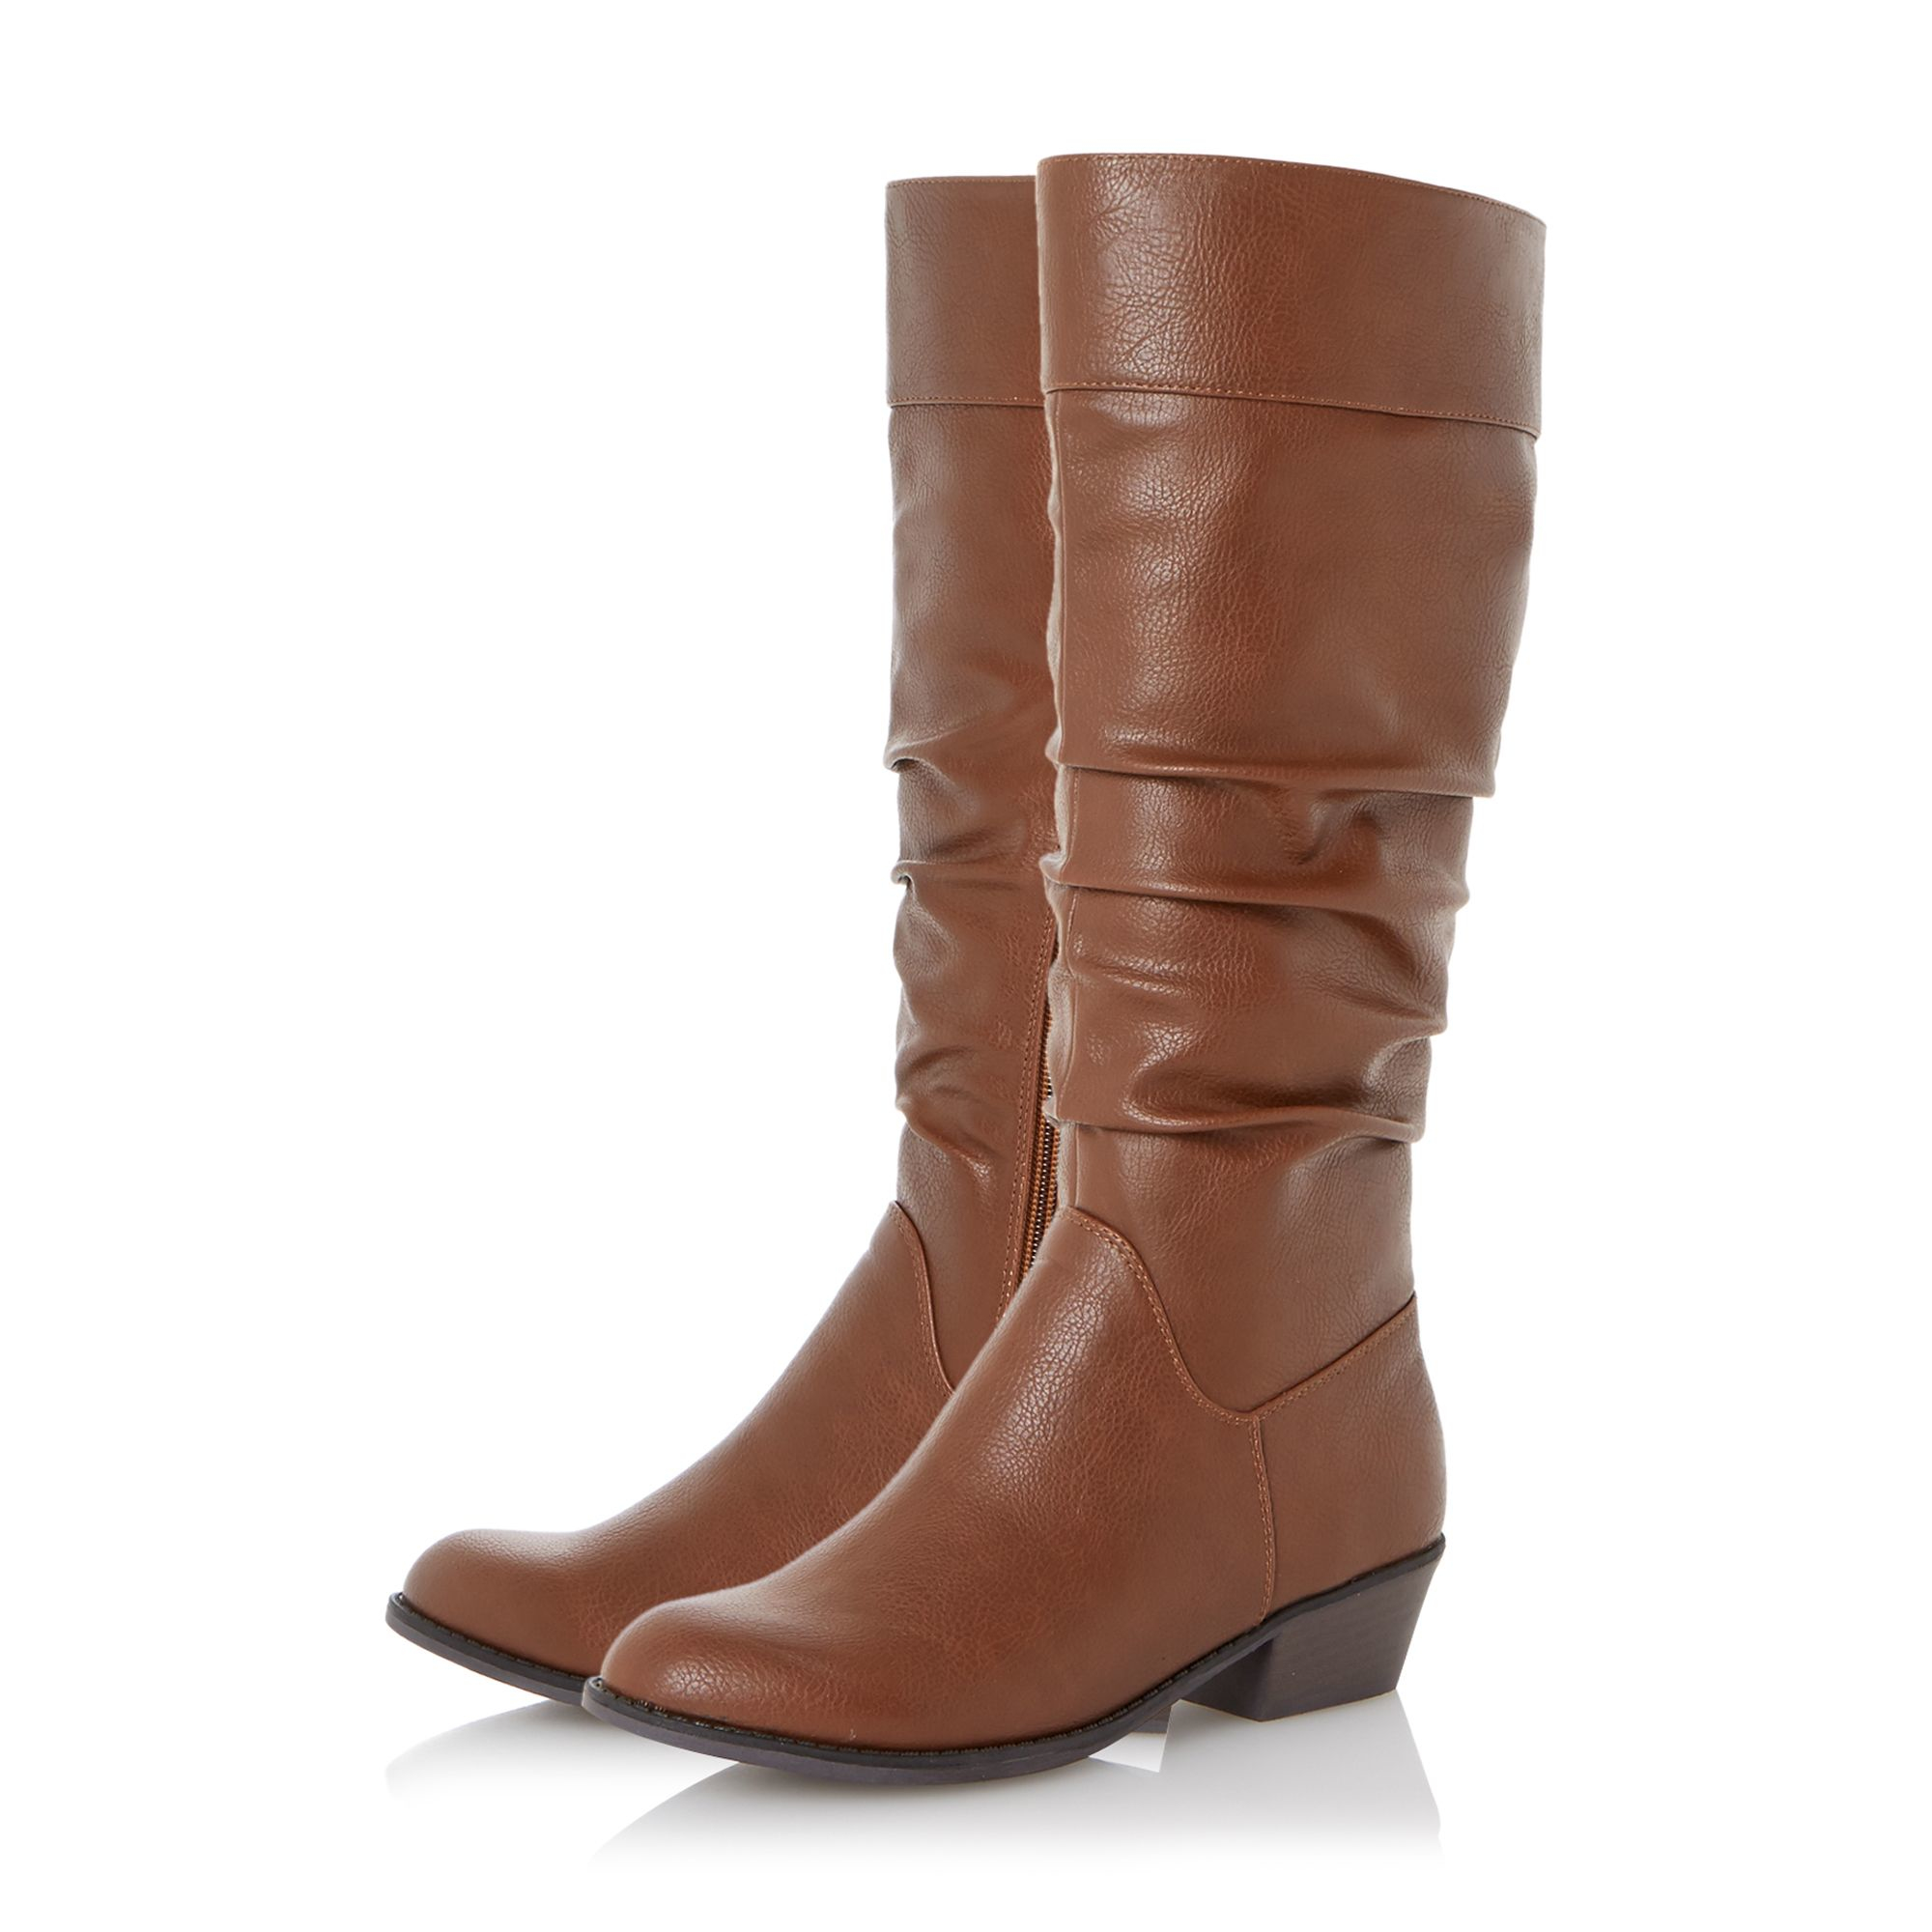 Dune Tarlia Ruched Knee High Boots in Tan (Brown)